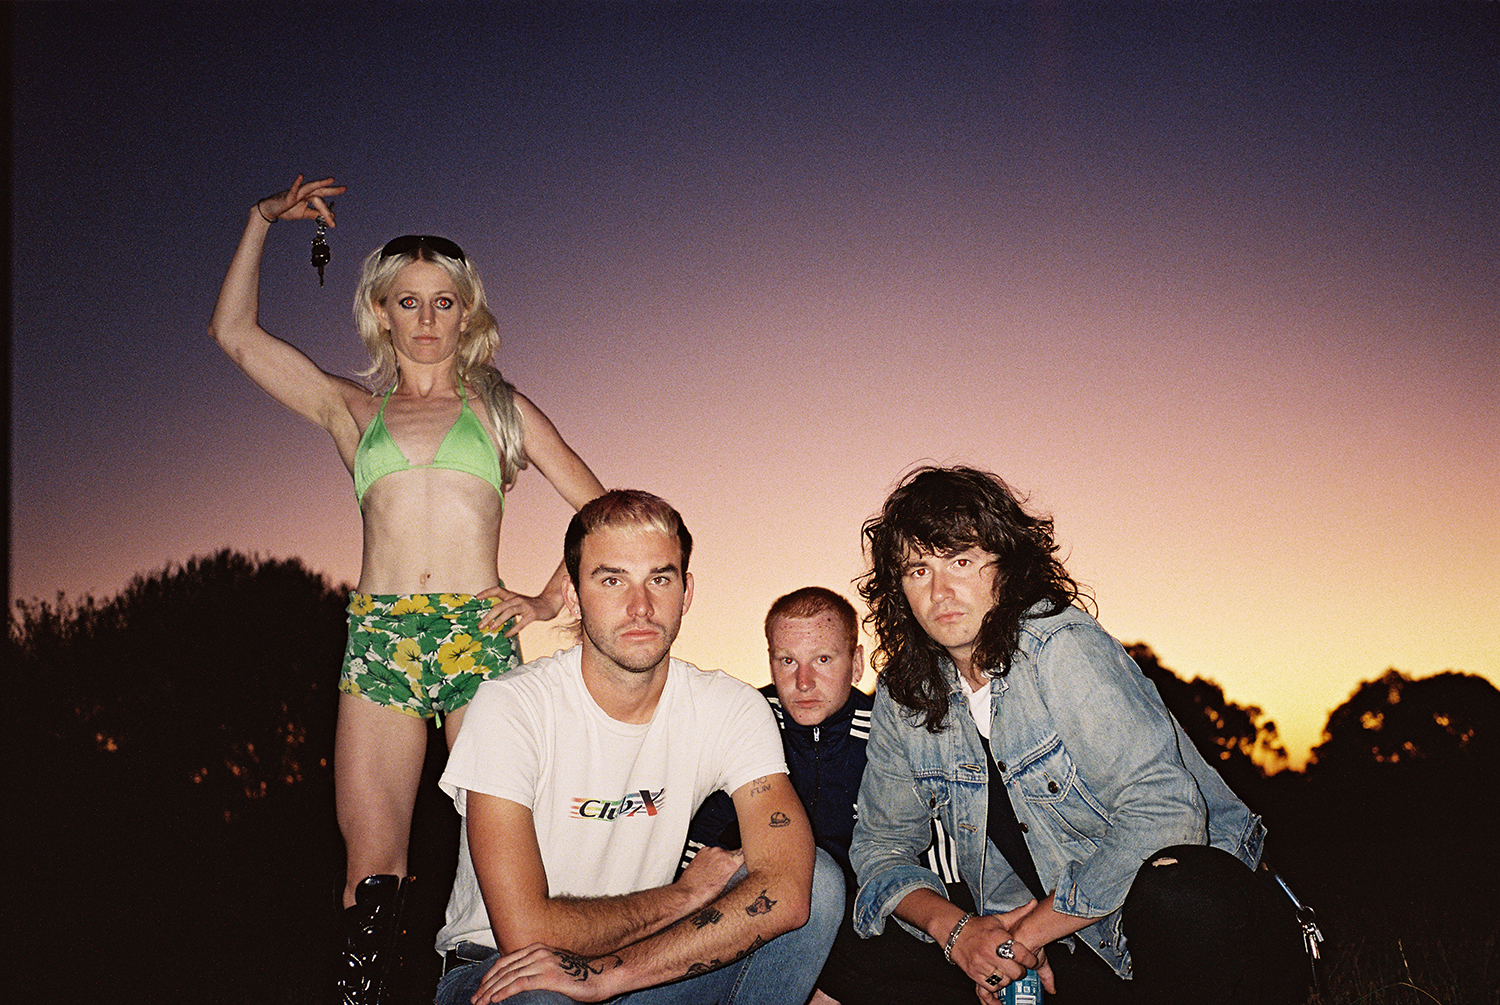 Amyl & The Sniffers Claim This Week's Highest ARIA Chart Debut With 'Comfort To Me'